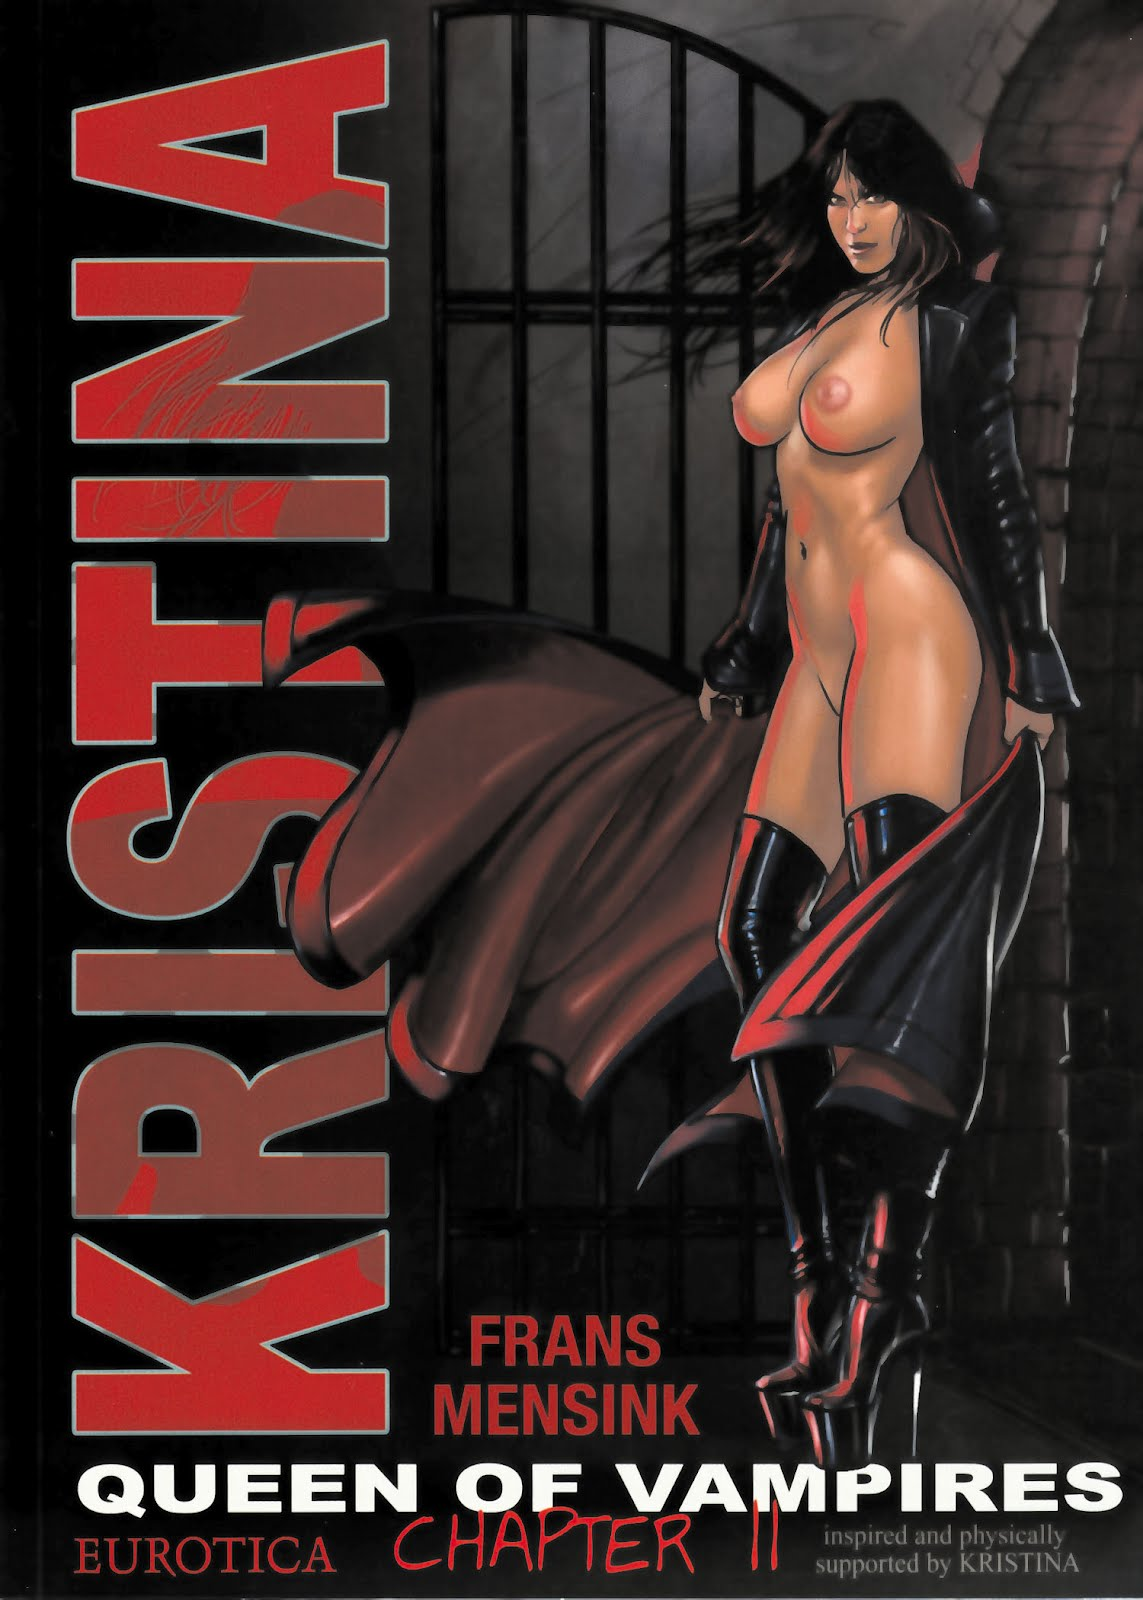 Jules Adult Comix / Hentai Comics, Pics & Hentai Games: Kristina Queen Of